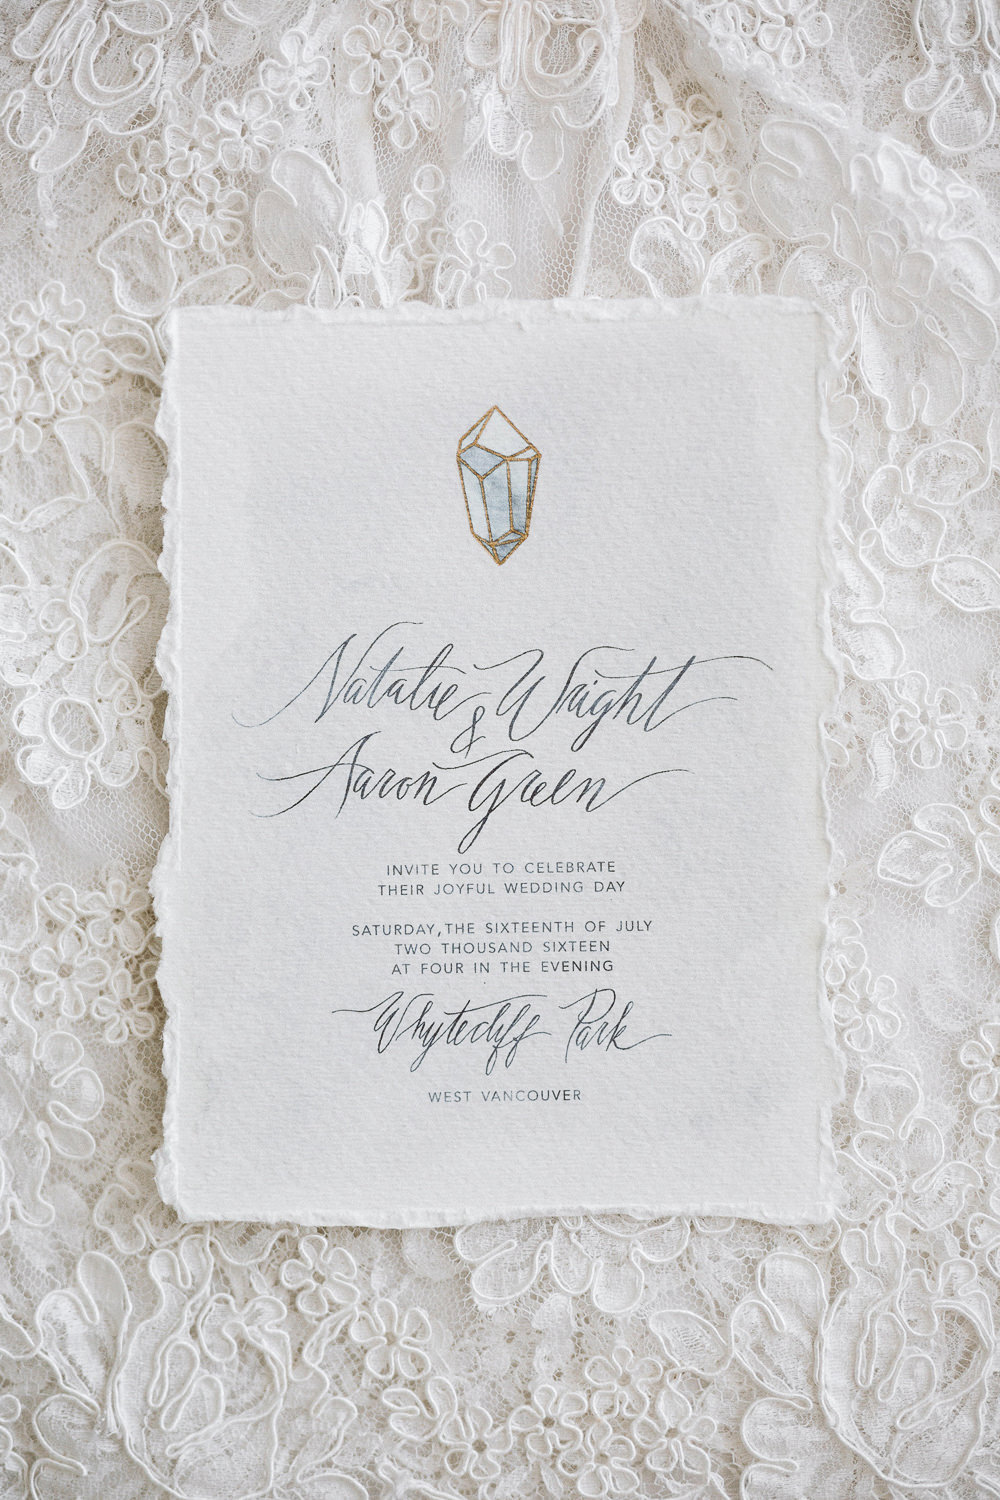 Bespoke-invitation-coastal-wedding